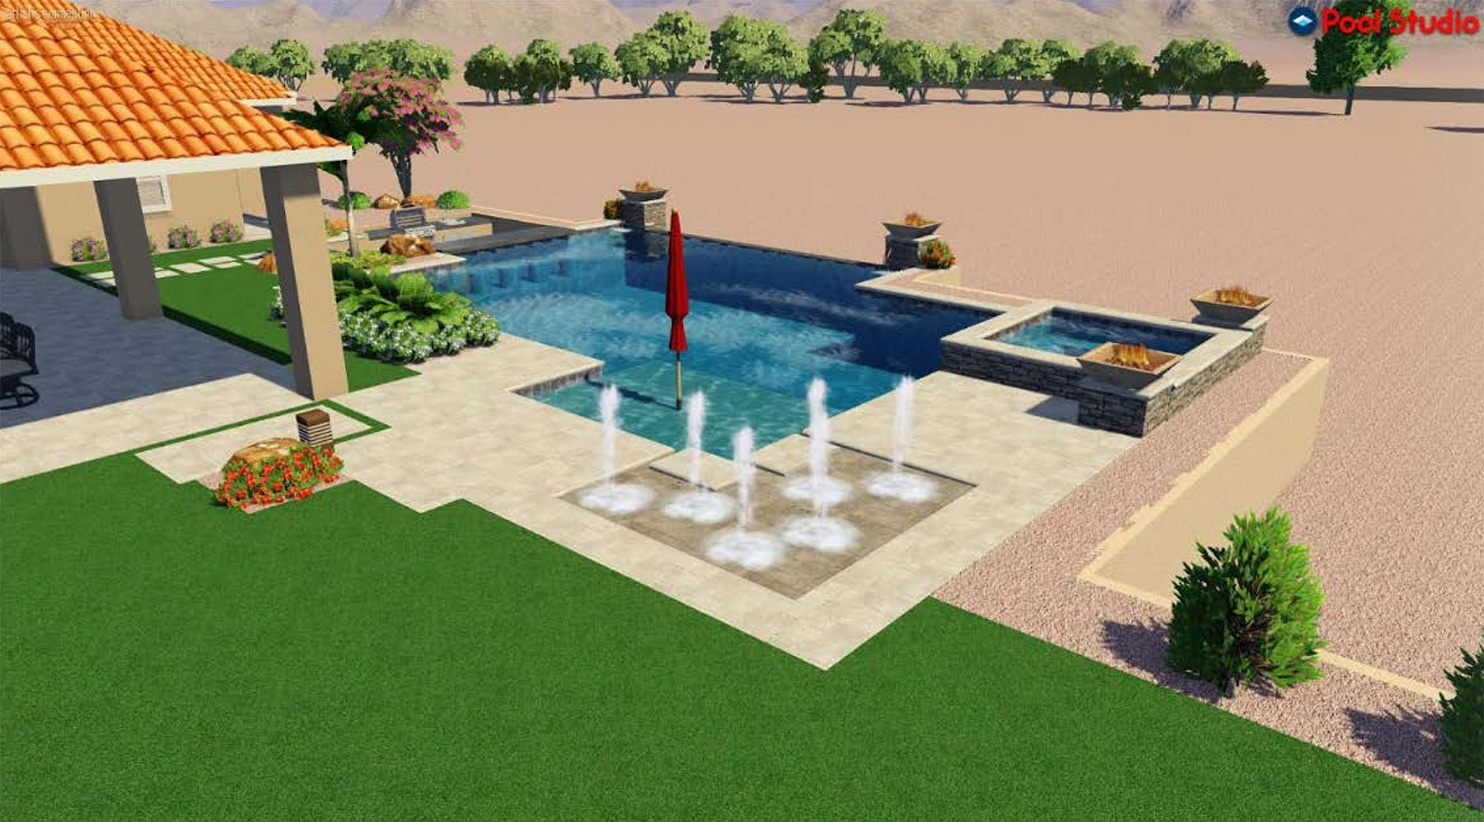 Swimming pool with fire bowls, and water fountains, umbrella in the center of the pool.